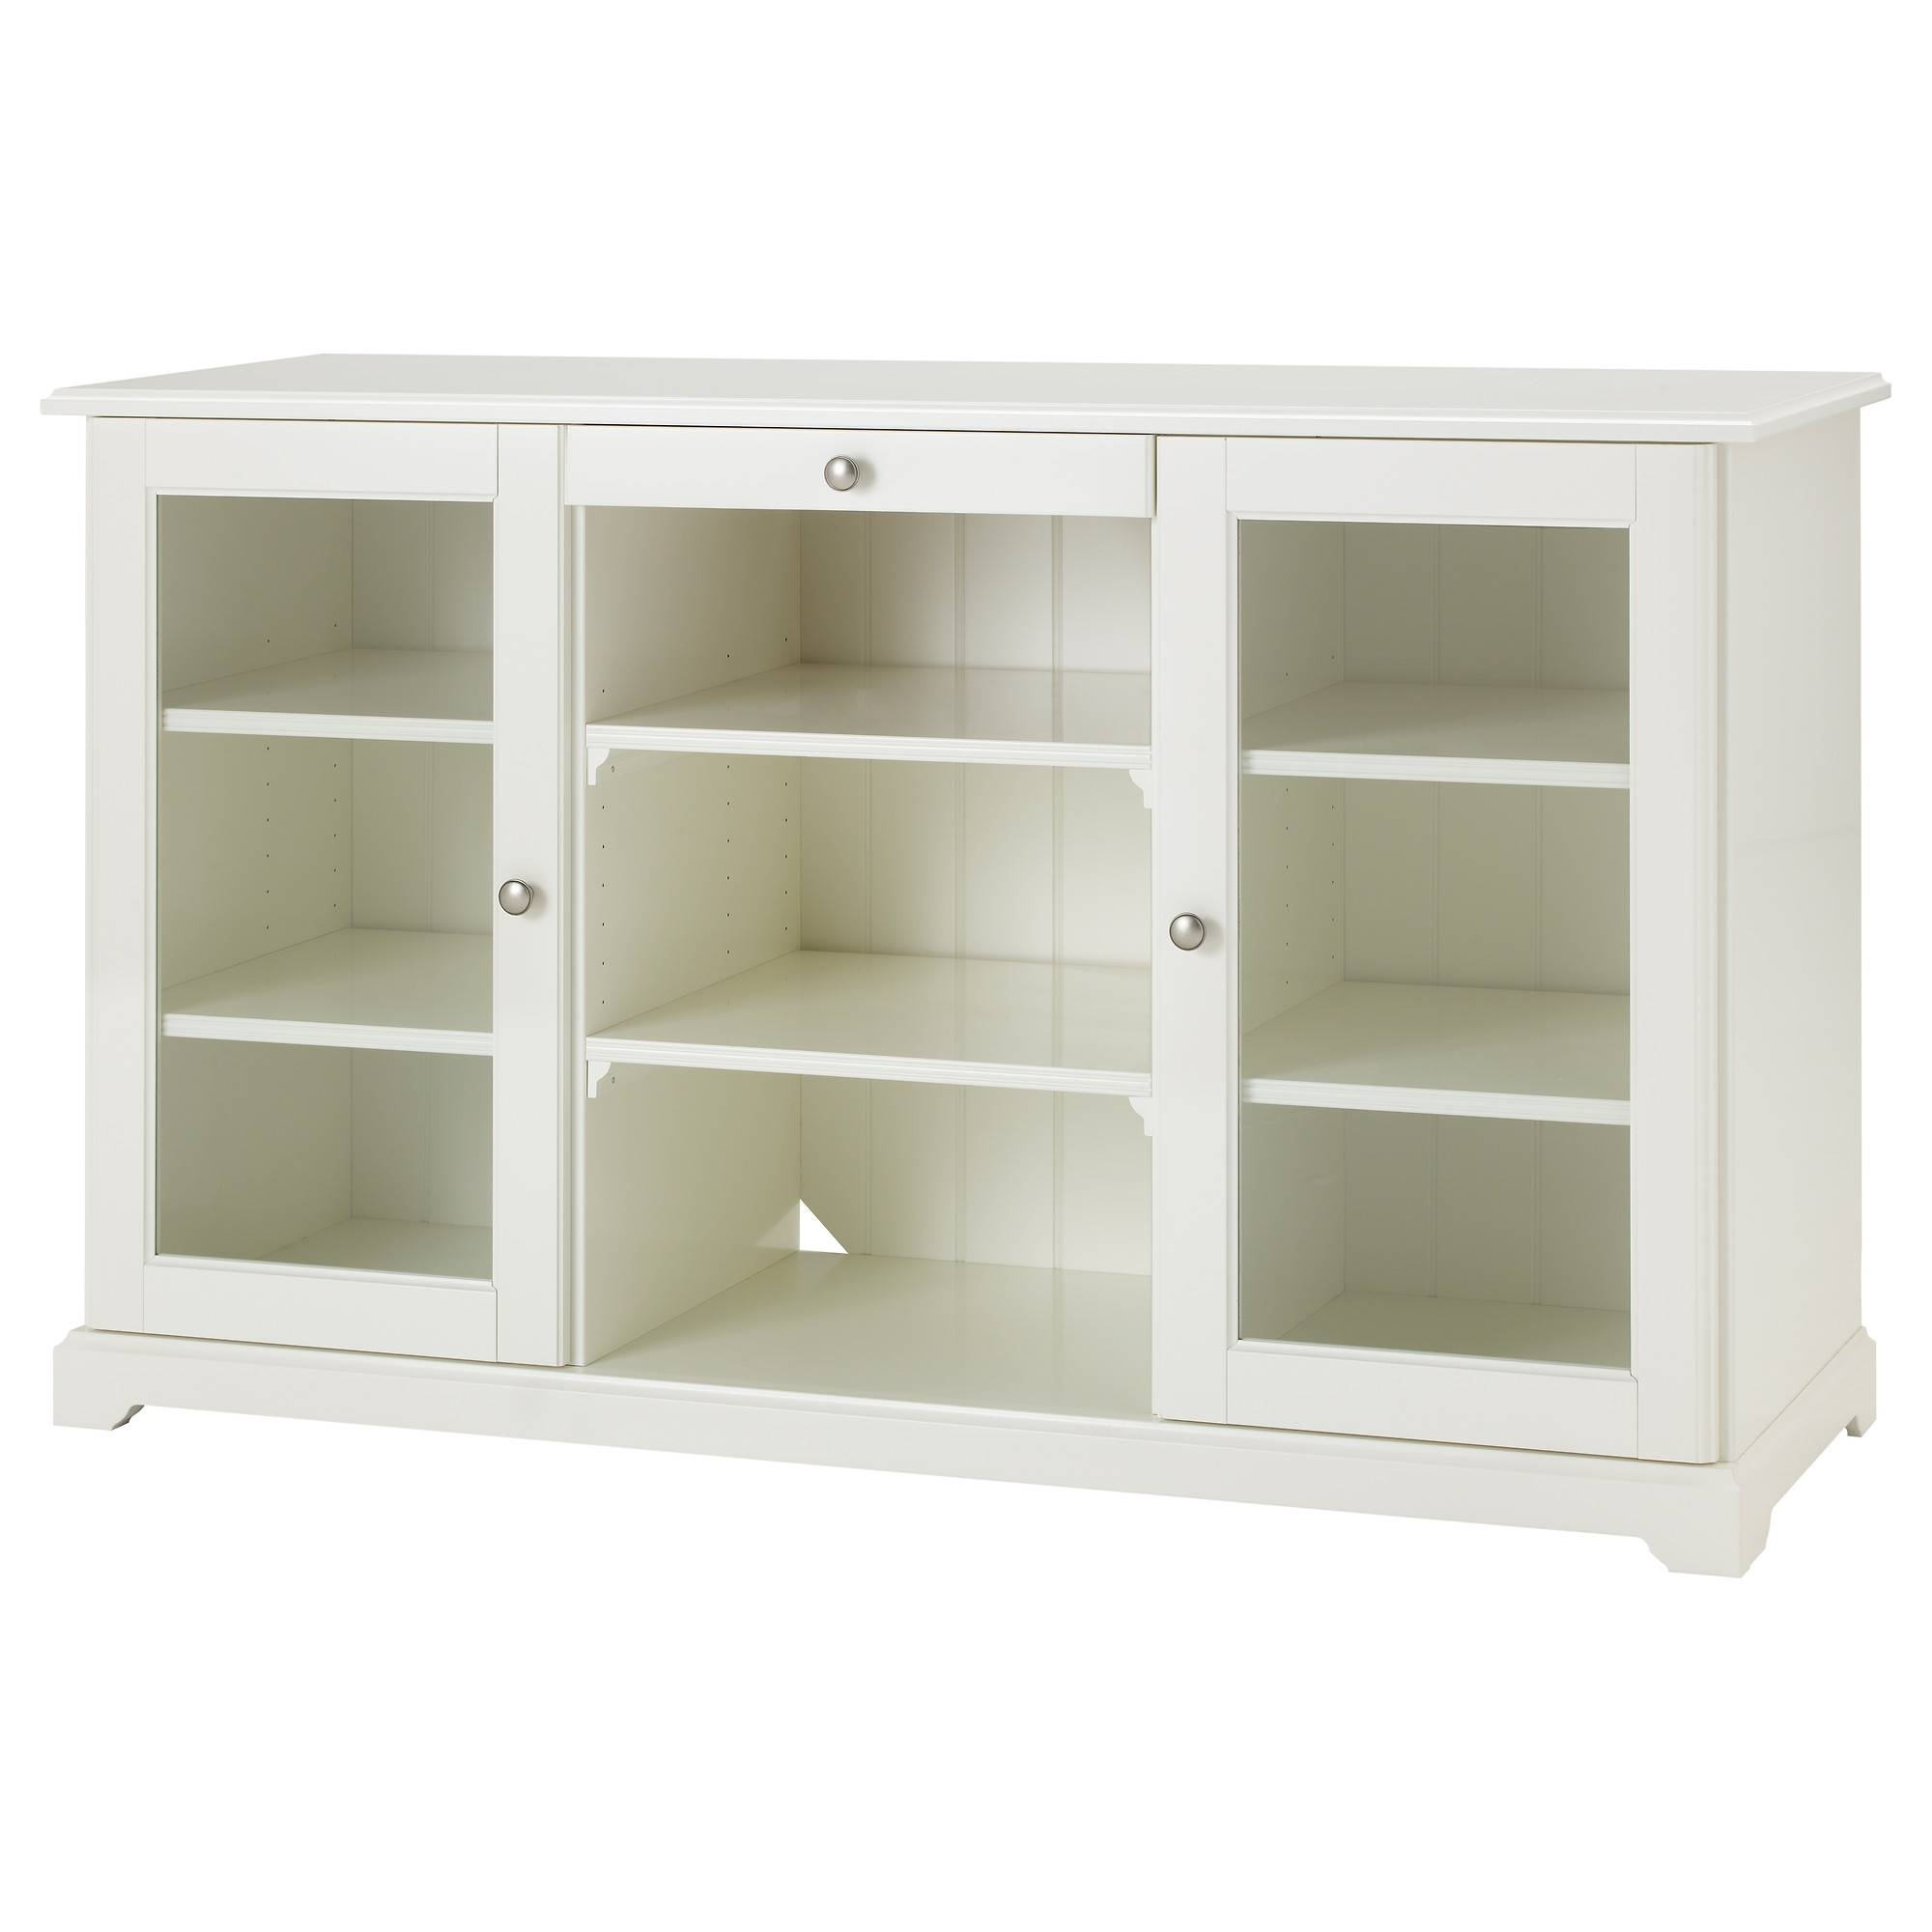 Cabinets & Console Tables - Ikea intended for White Sideboards for Sale (Image 3 of 30)